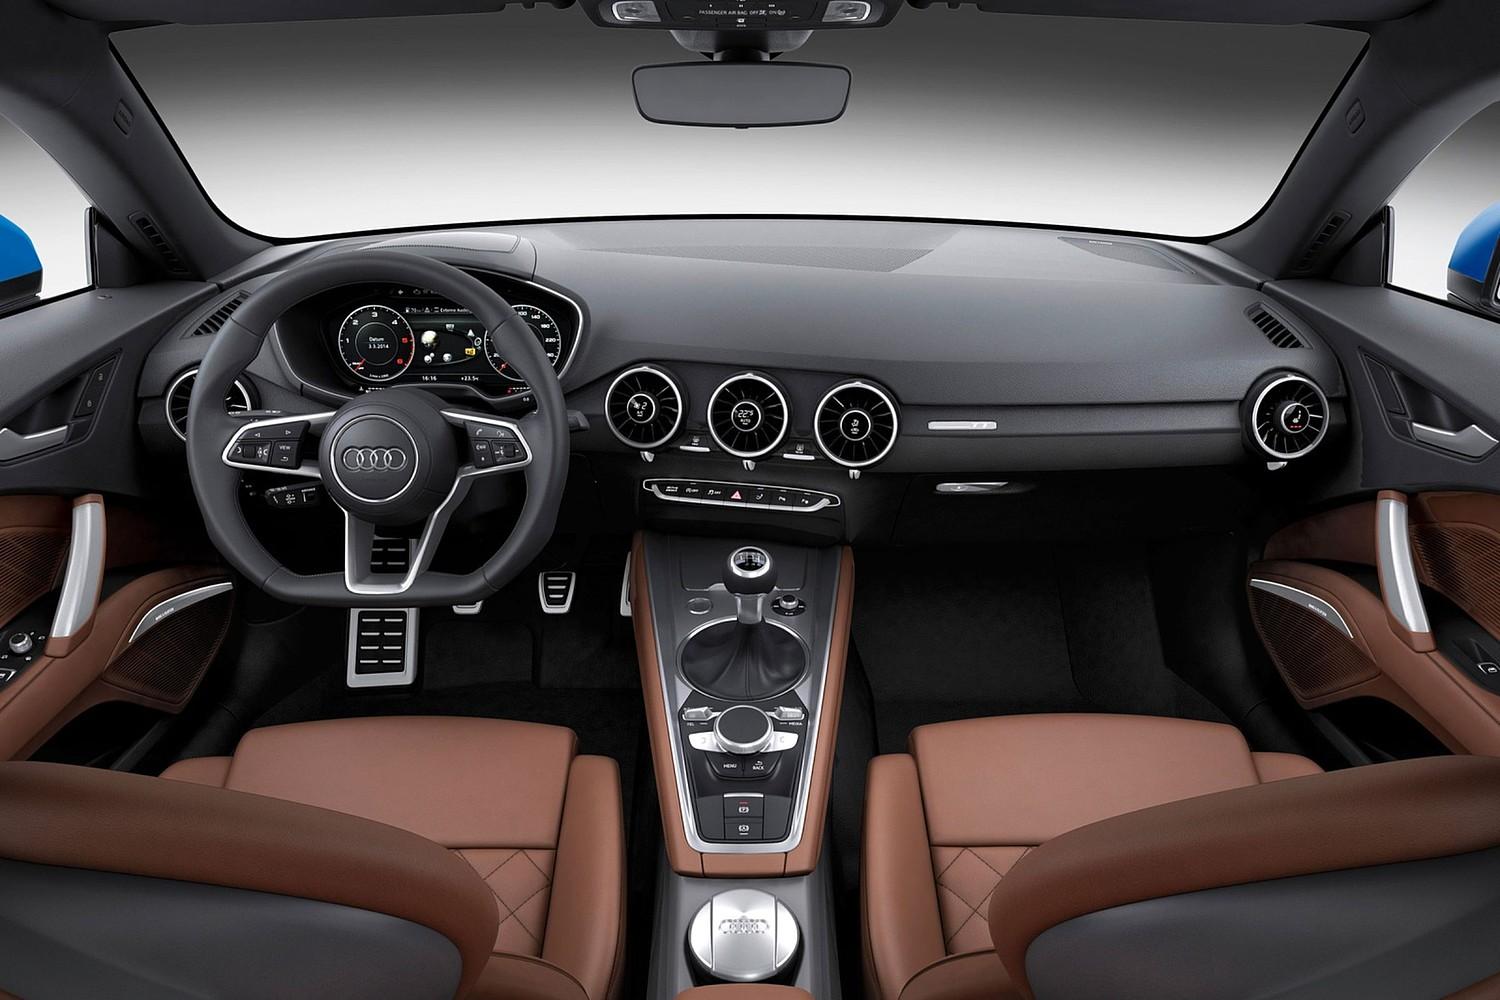 Audi TT 2.0T quattro Coupe Dashboard (2017 model year shown)